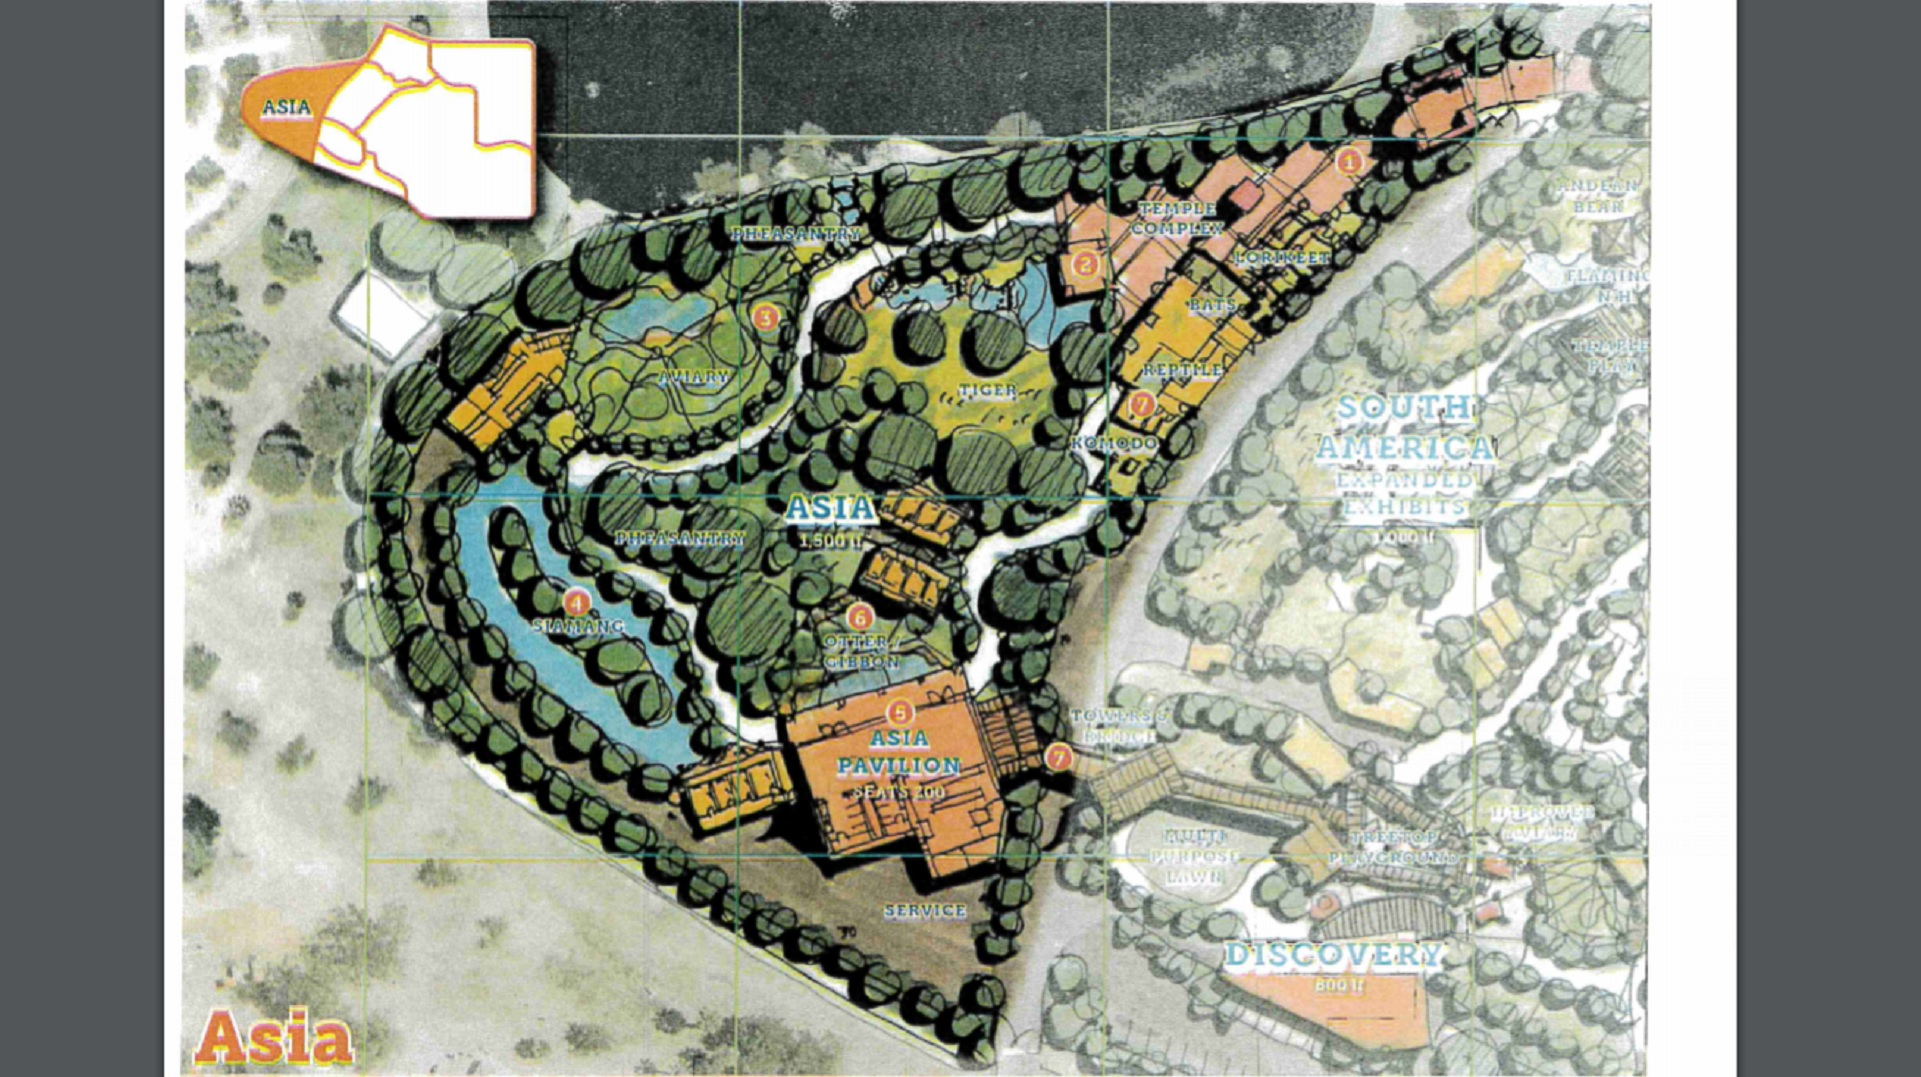 "The City of Tucson's 2018 Master Plan for Reid Park Zoo calls for turning the Park's Barnum Hill into a ""Pathway to Asia"" exhibit."